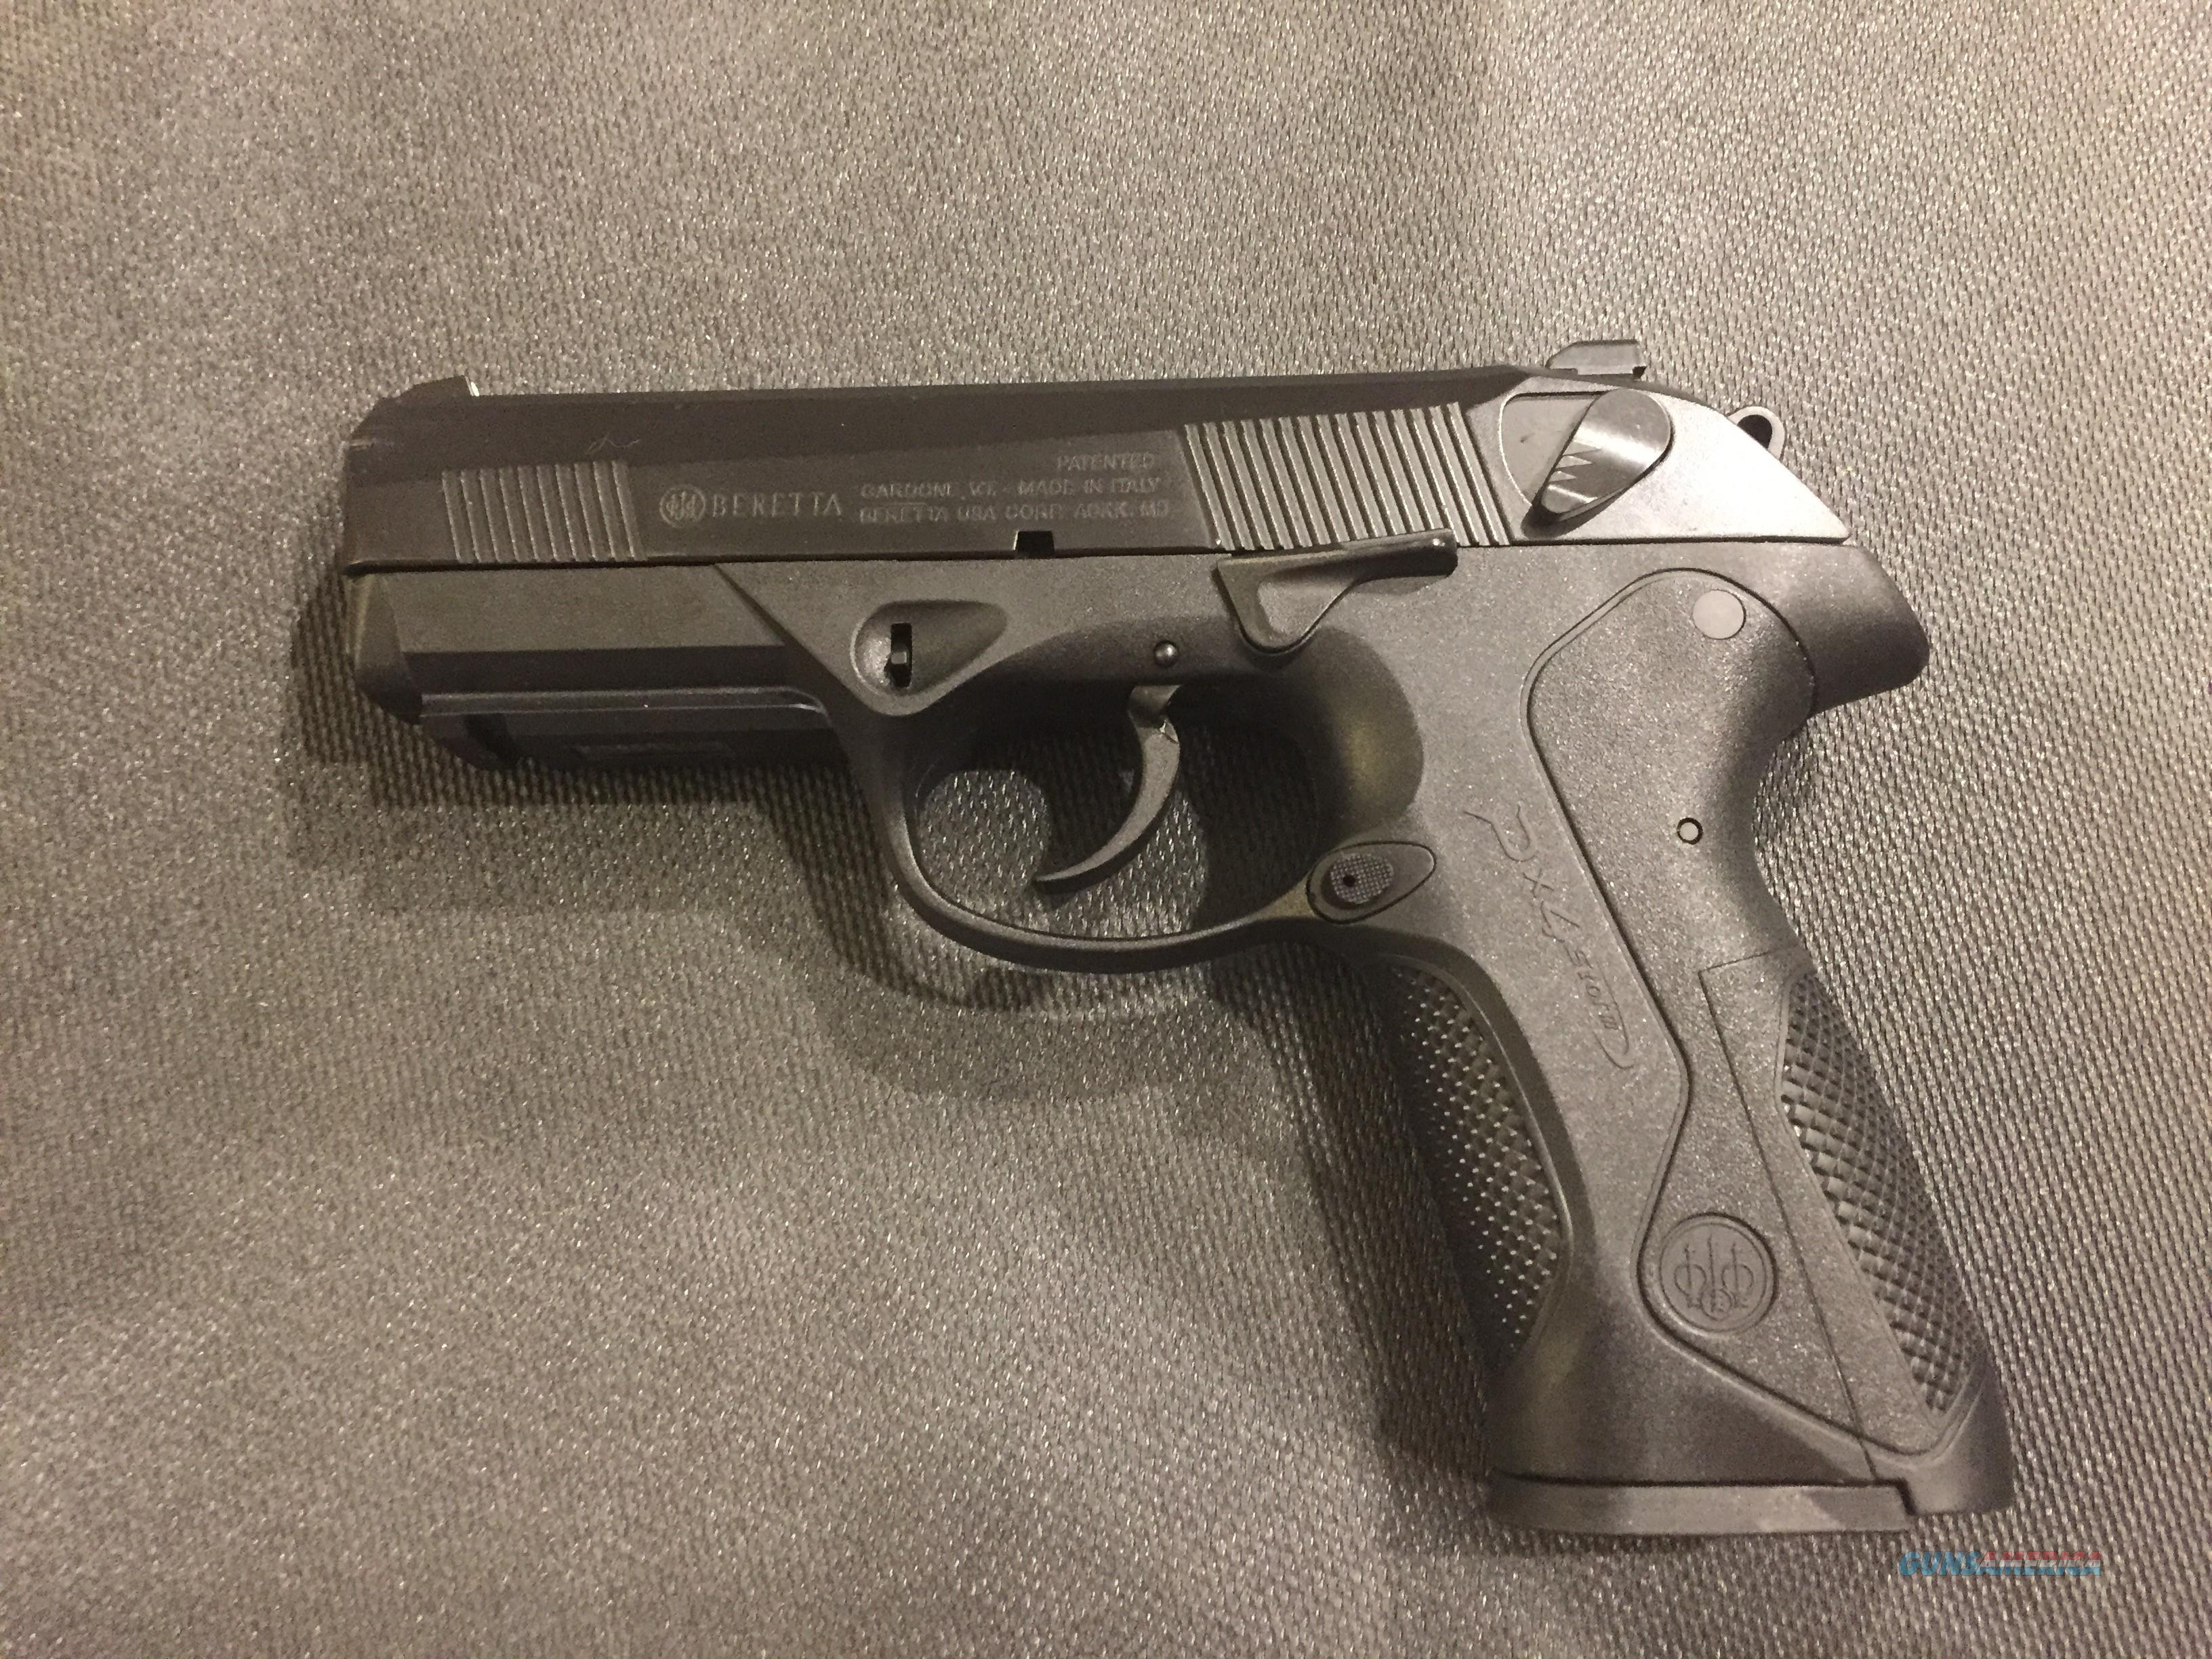 Beretta PX4 Storm in .40 S&W excellent condition (no card fees added)  Guns > Pistols > Beretta Pistols > Polymer Frame